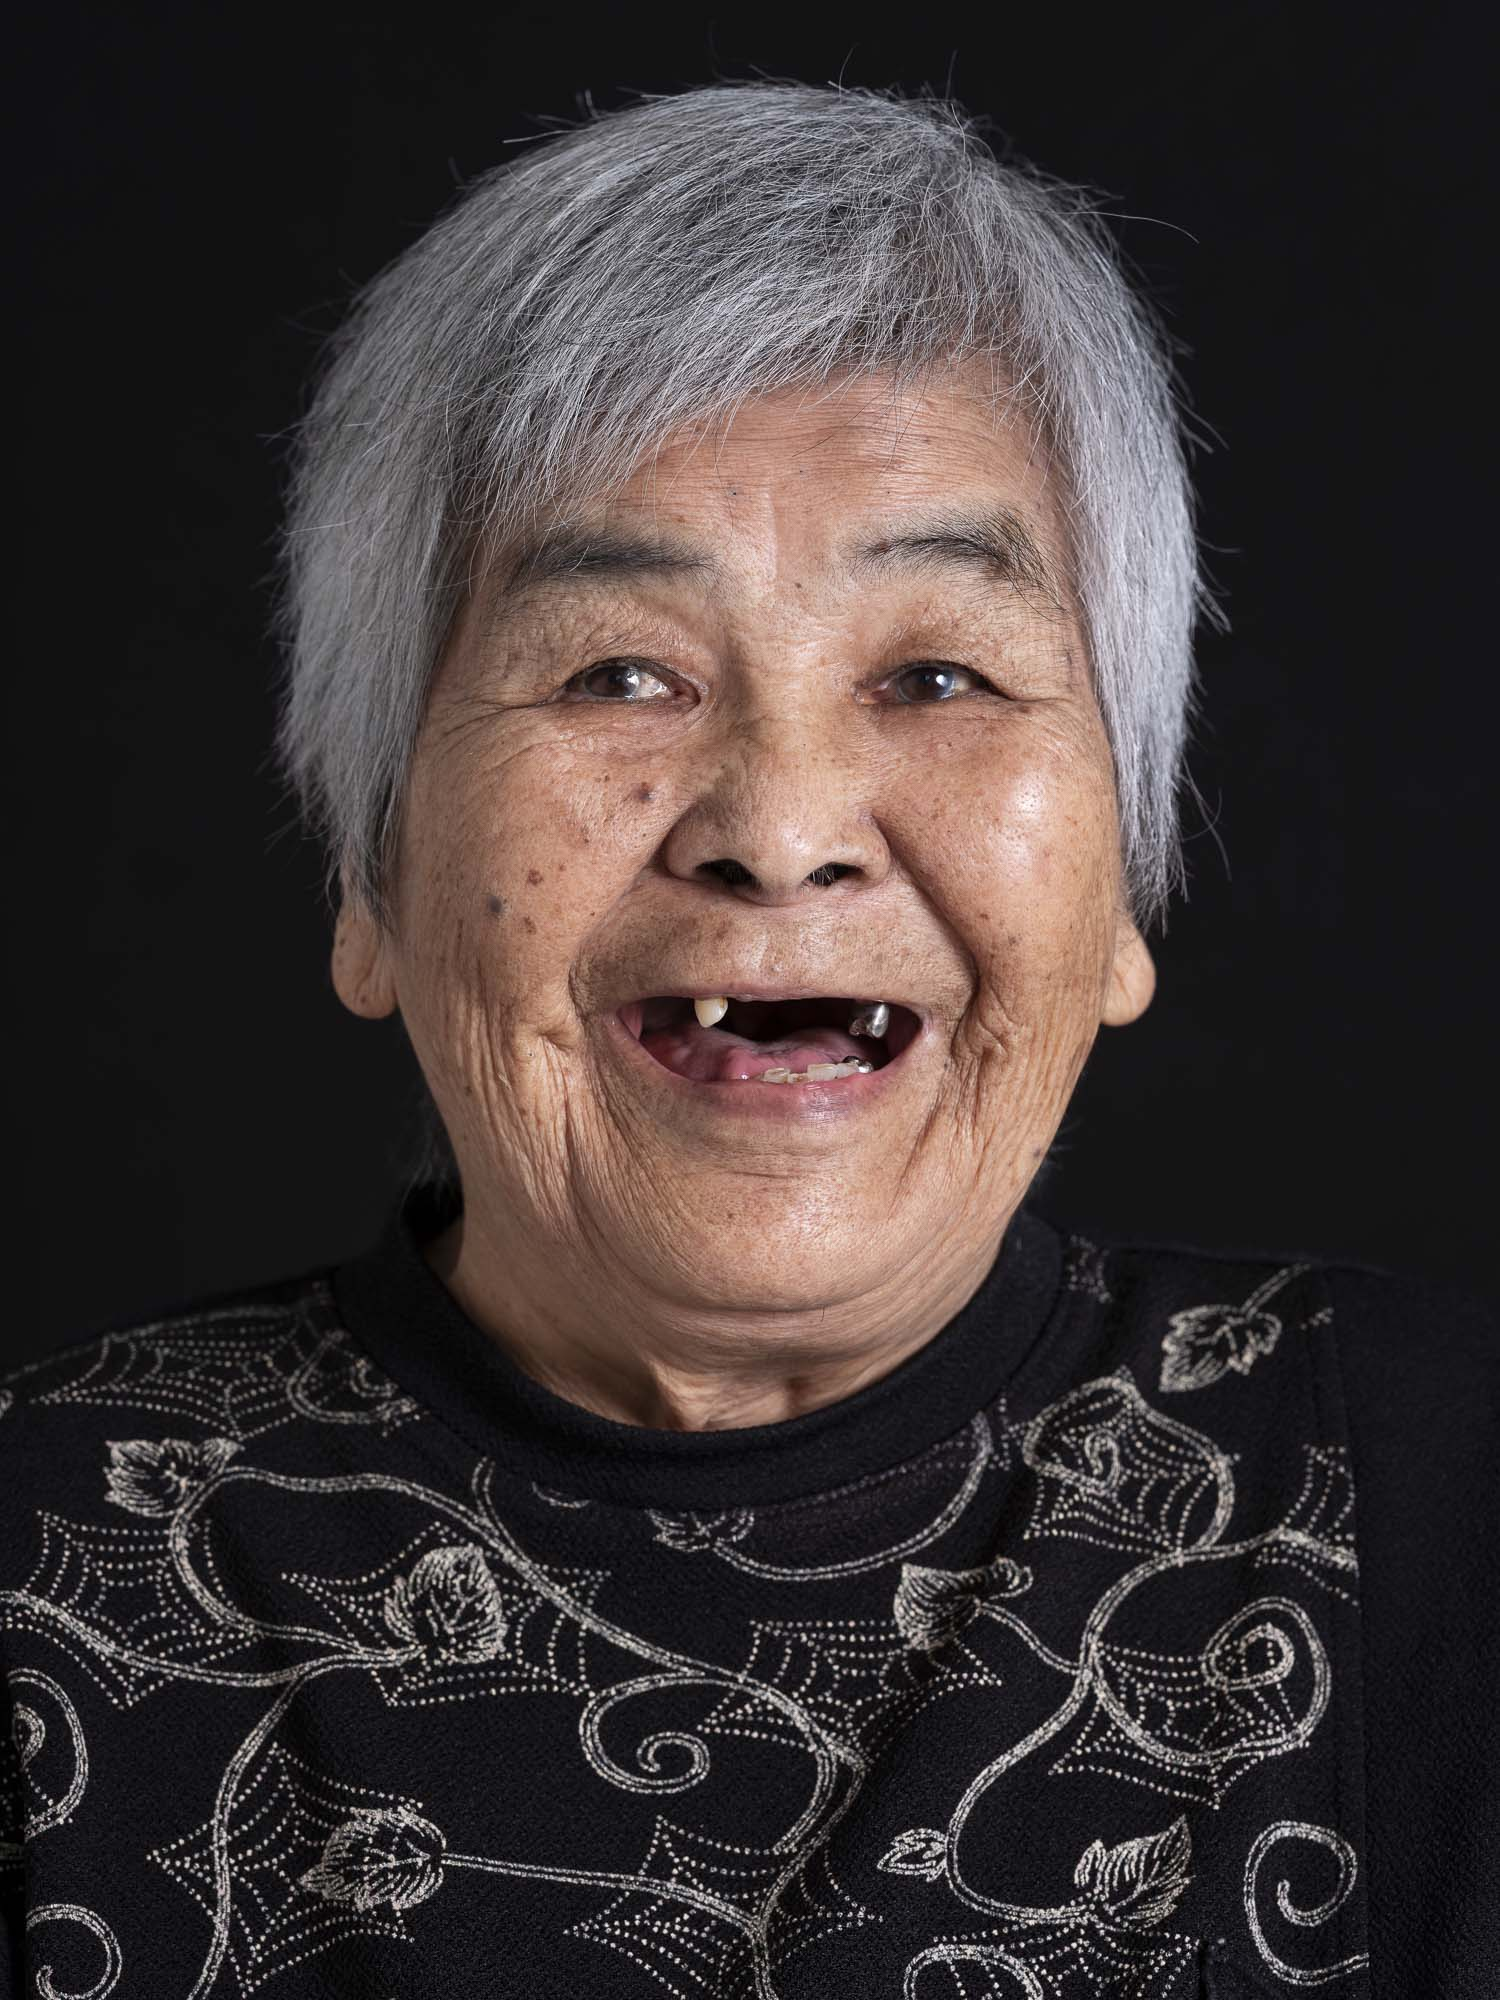 okinawa longevity smile lady old Commercial Editorial Portraiture Documentary Photographer fujifilm Director Singapore Jose Jeuland photography fashion